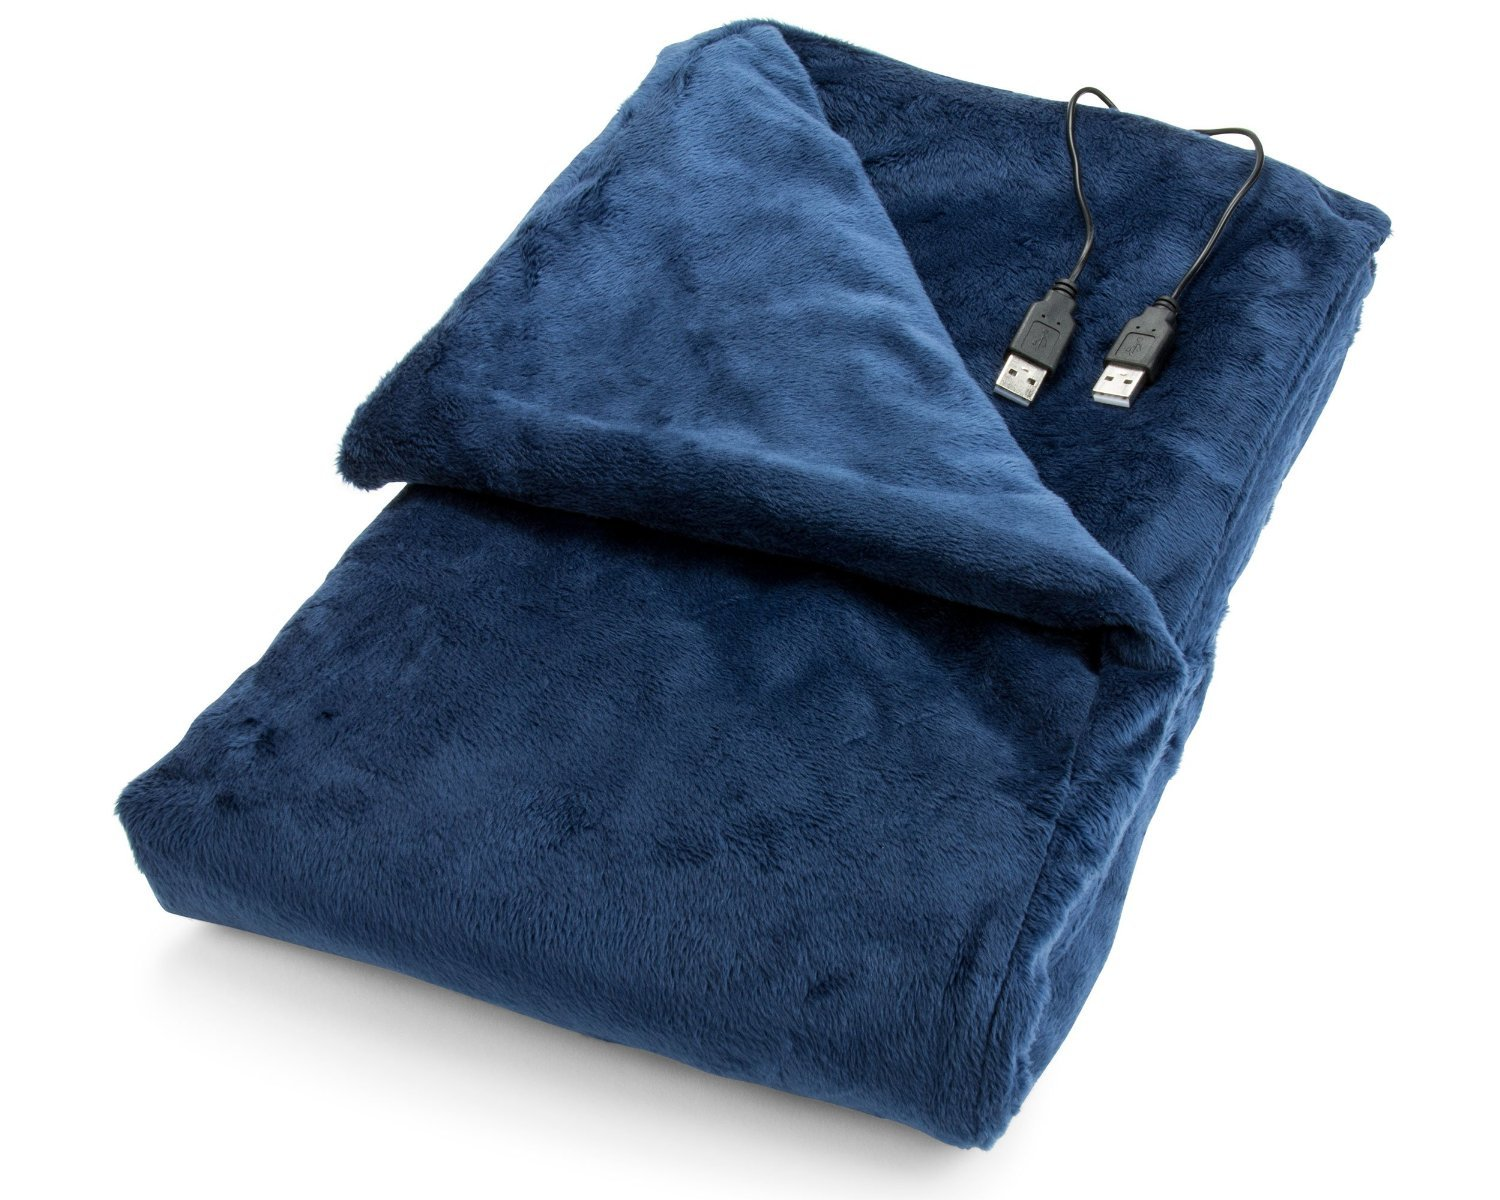 USB Heated Shawl and Lap Blanket - Blue Color - USB Heated Throw Perfect Alternative to a Mini Office Desk Heater